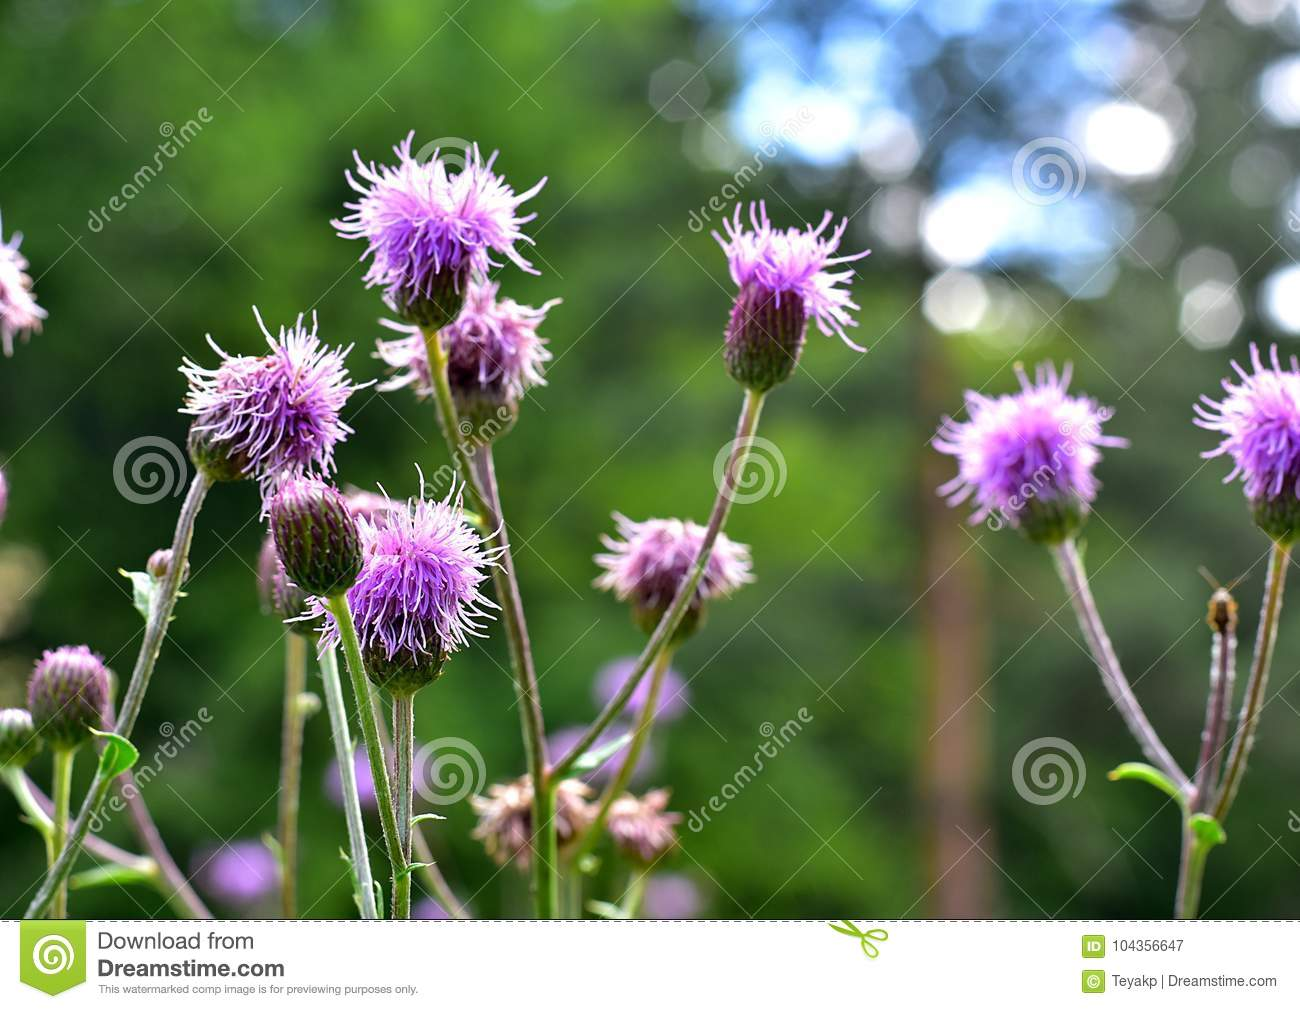 Purple flowers with natural blurred background